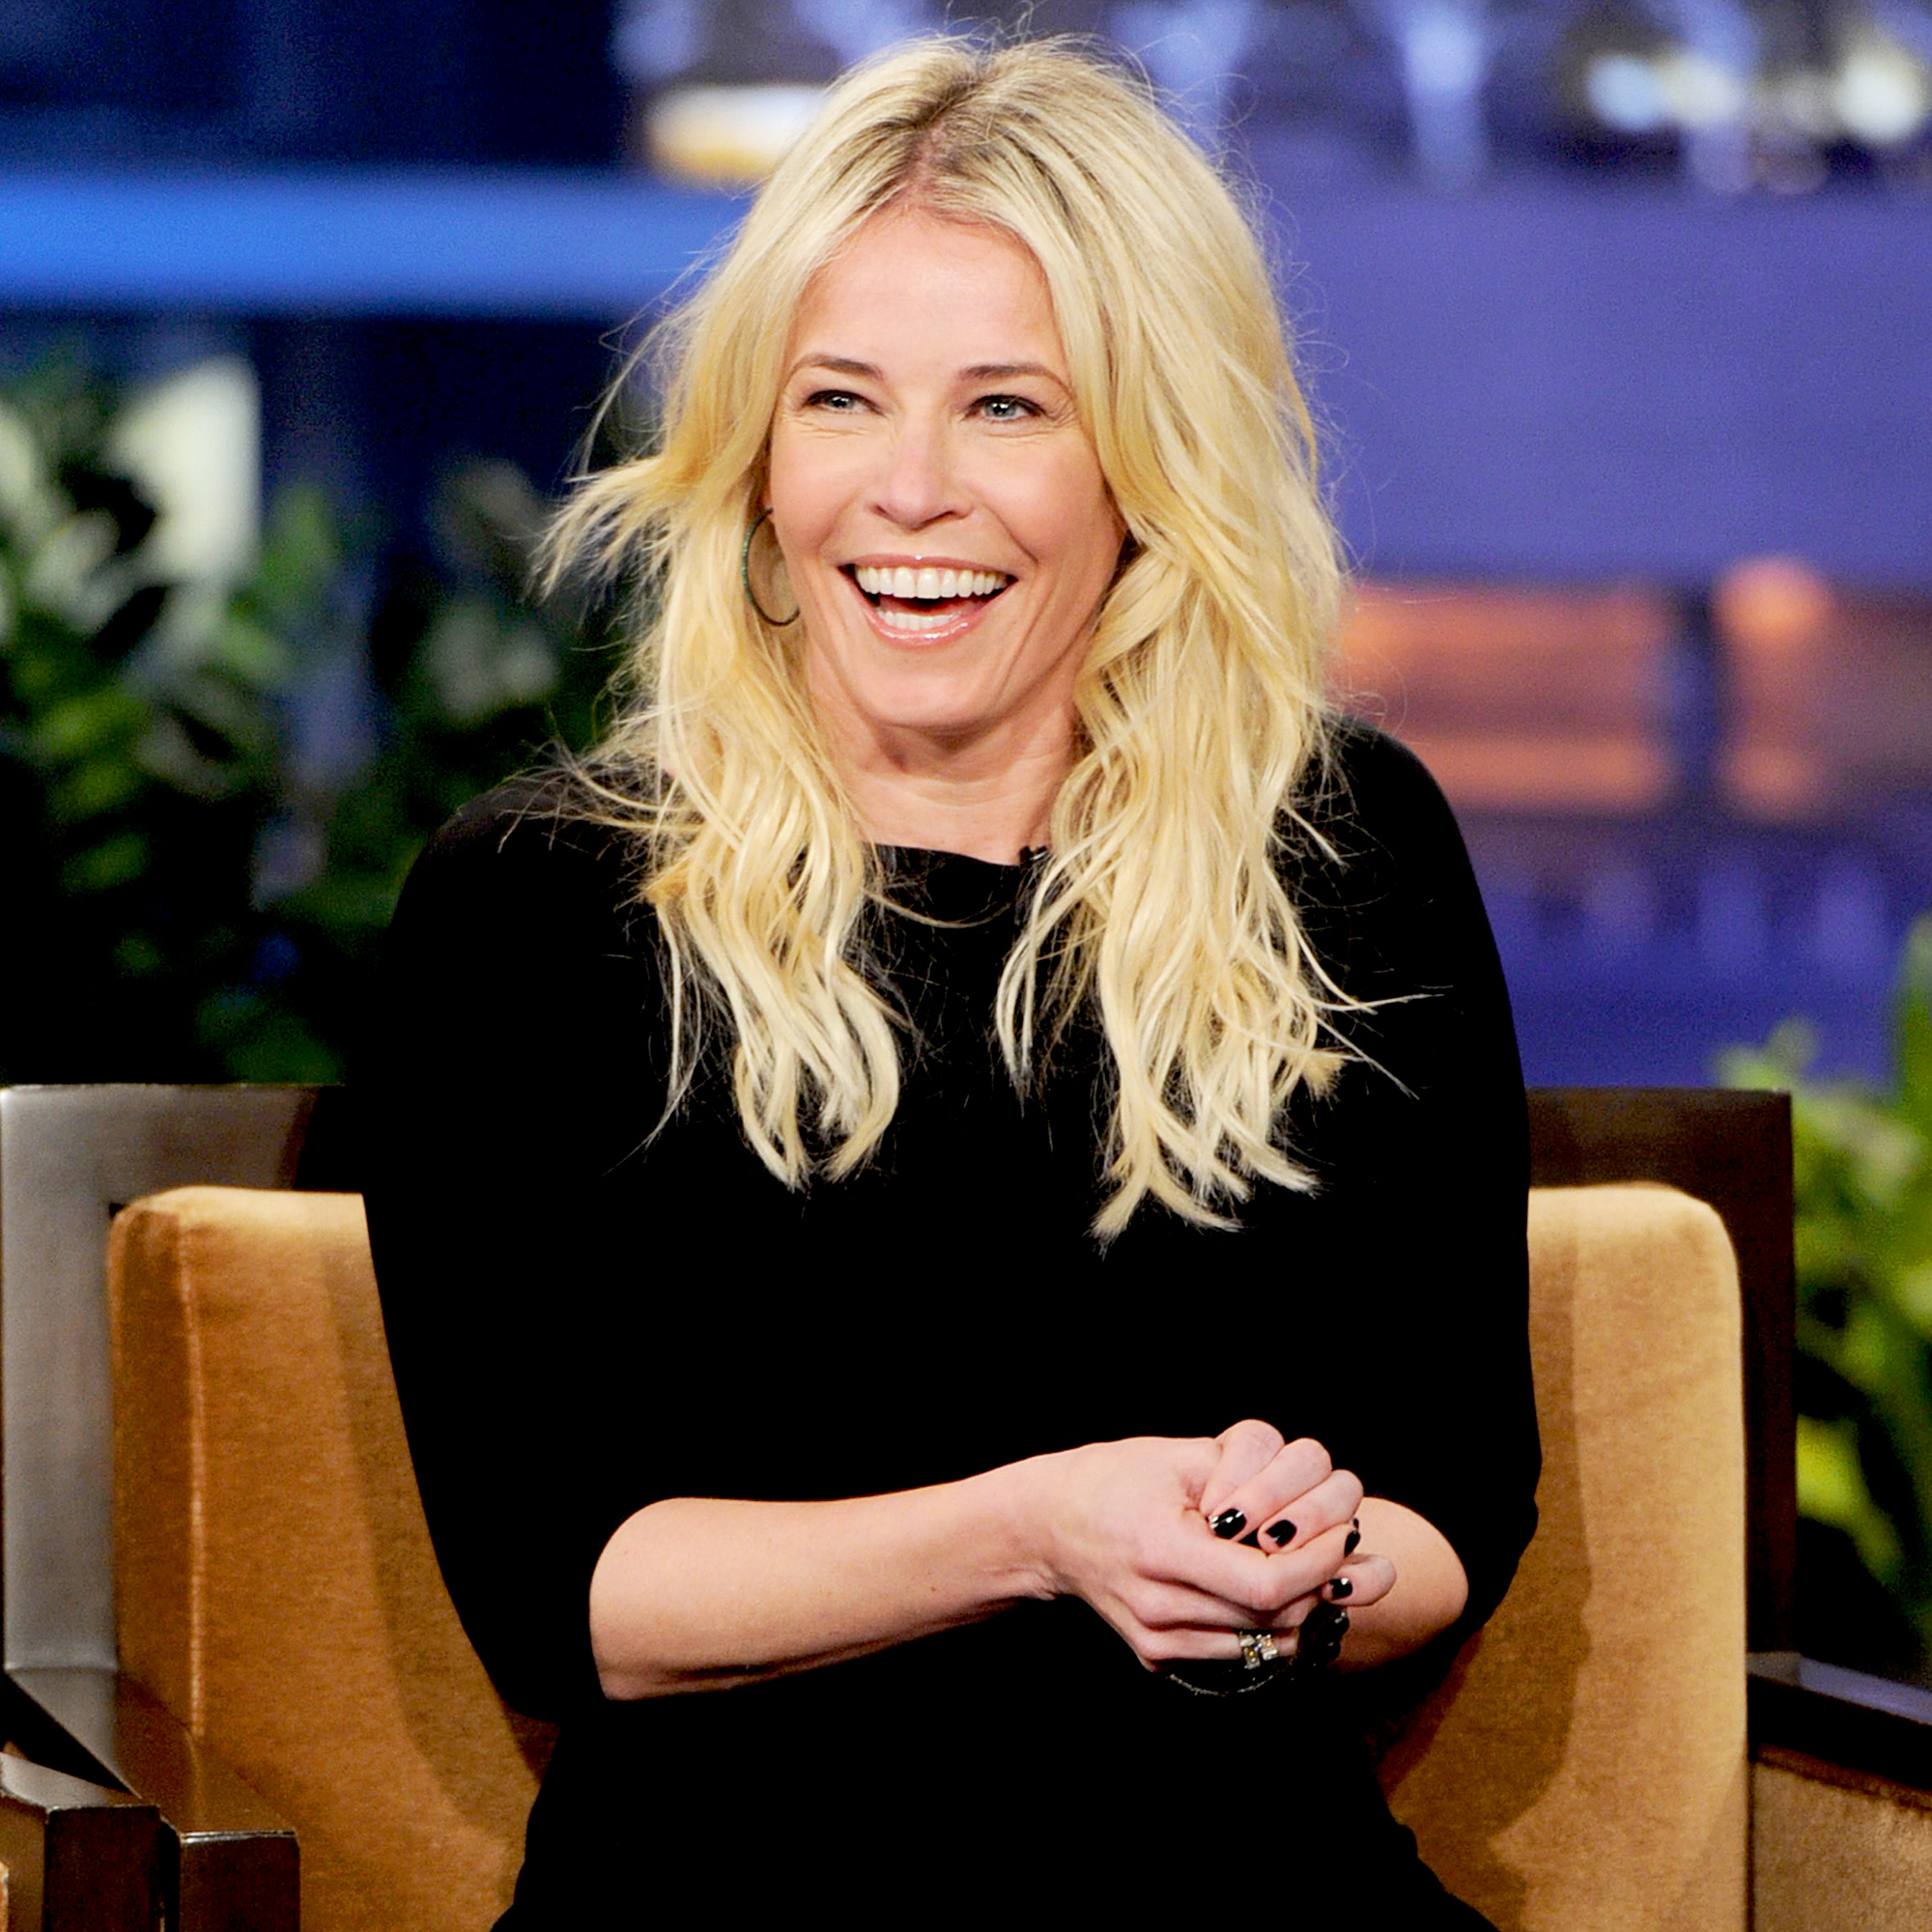 Naked pictures of chelsea handler pussy photos 23